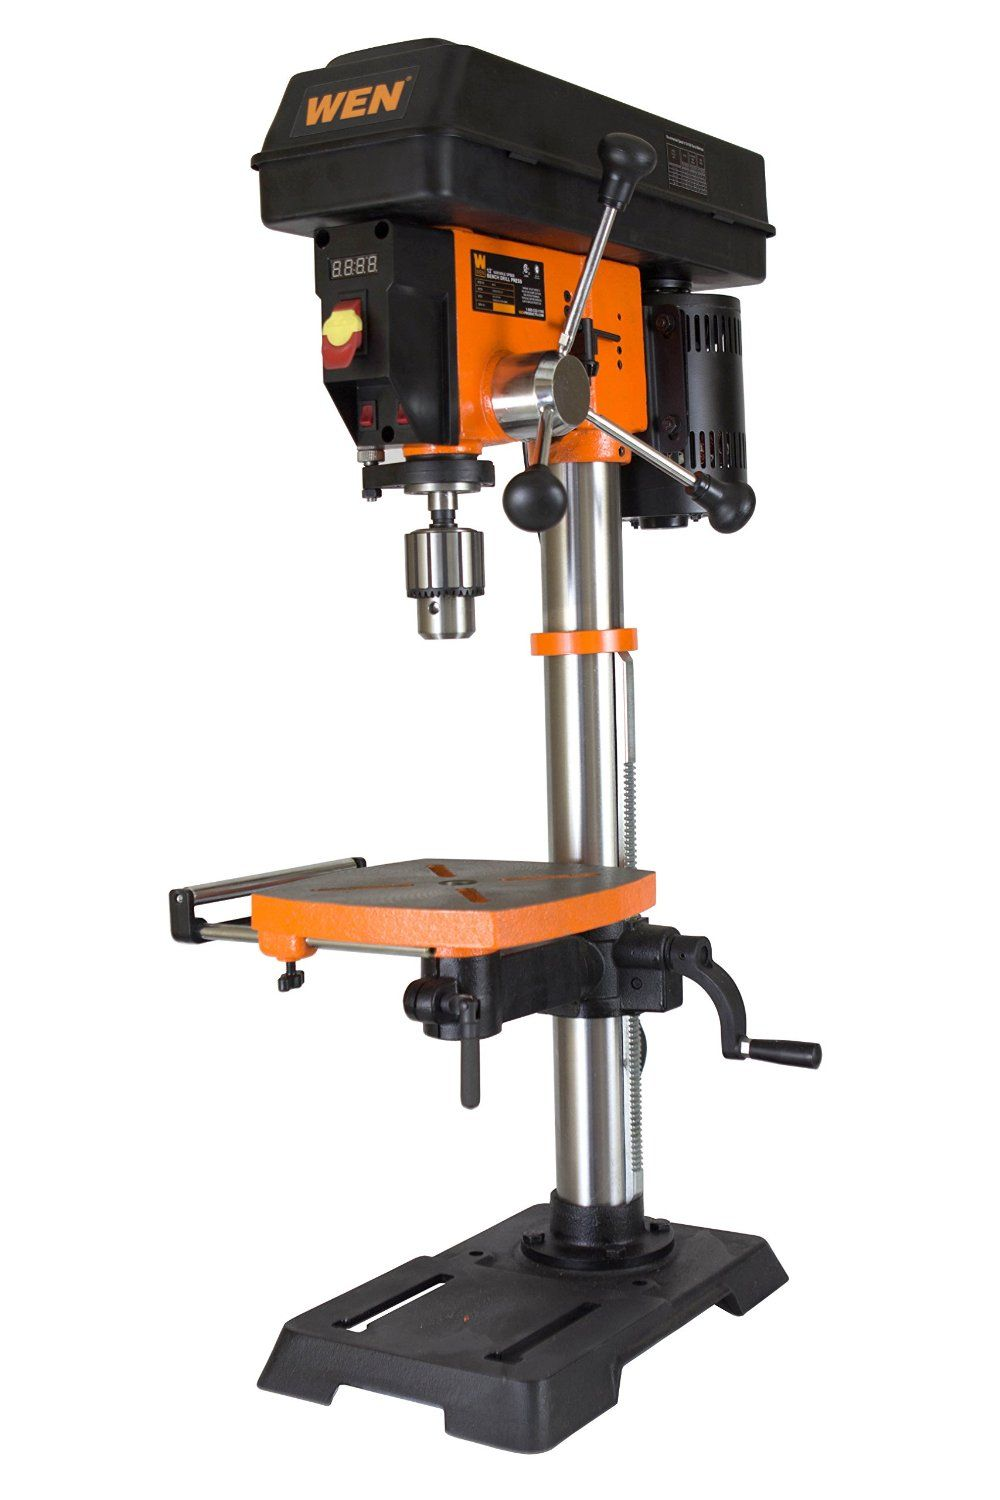 Pin By Flooring Magazine On Complete Home Inspirations Drill Press Speed Drills Drill